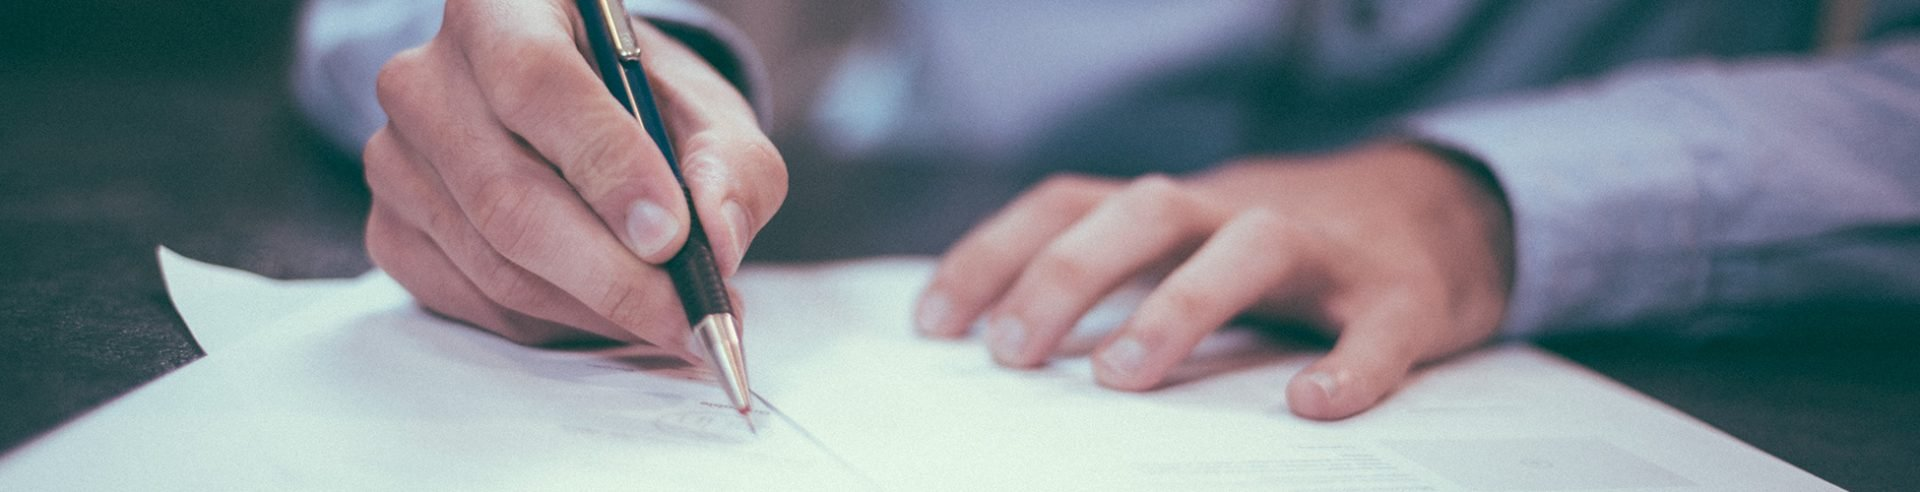 Image of man making notes with a pen